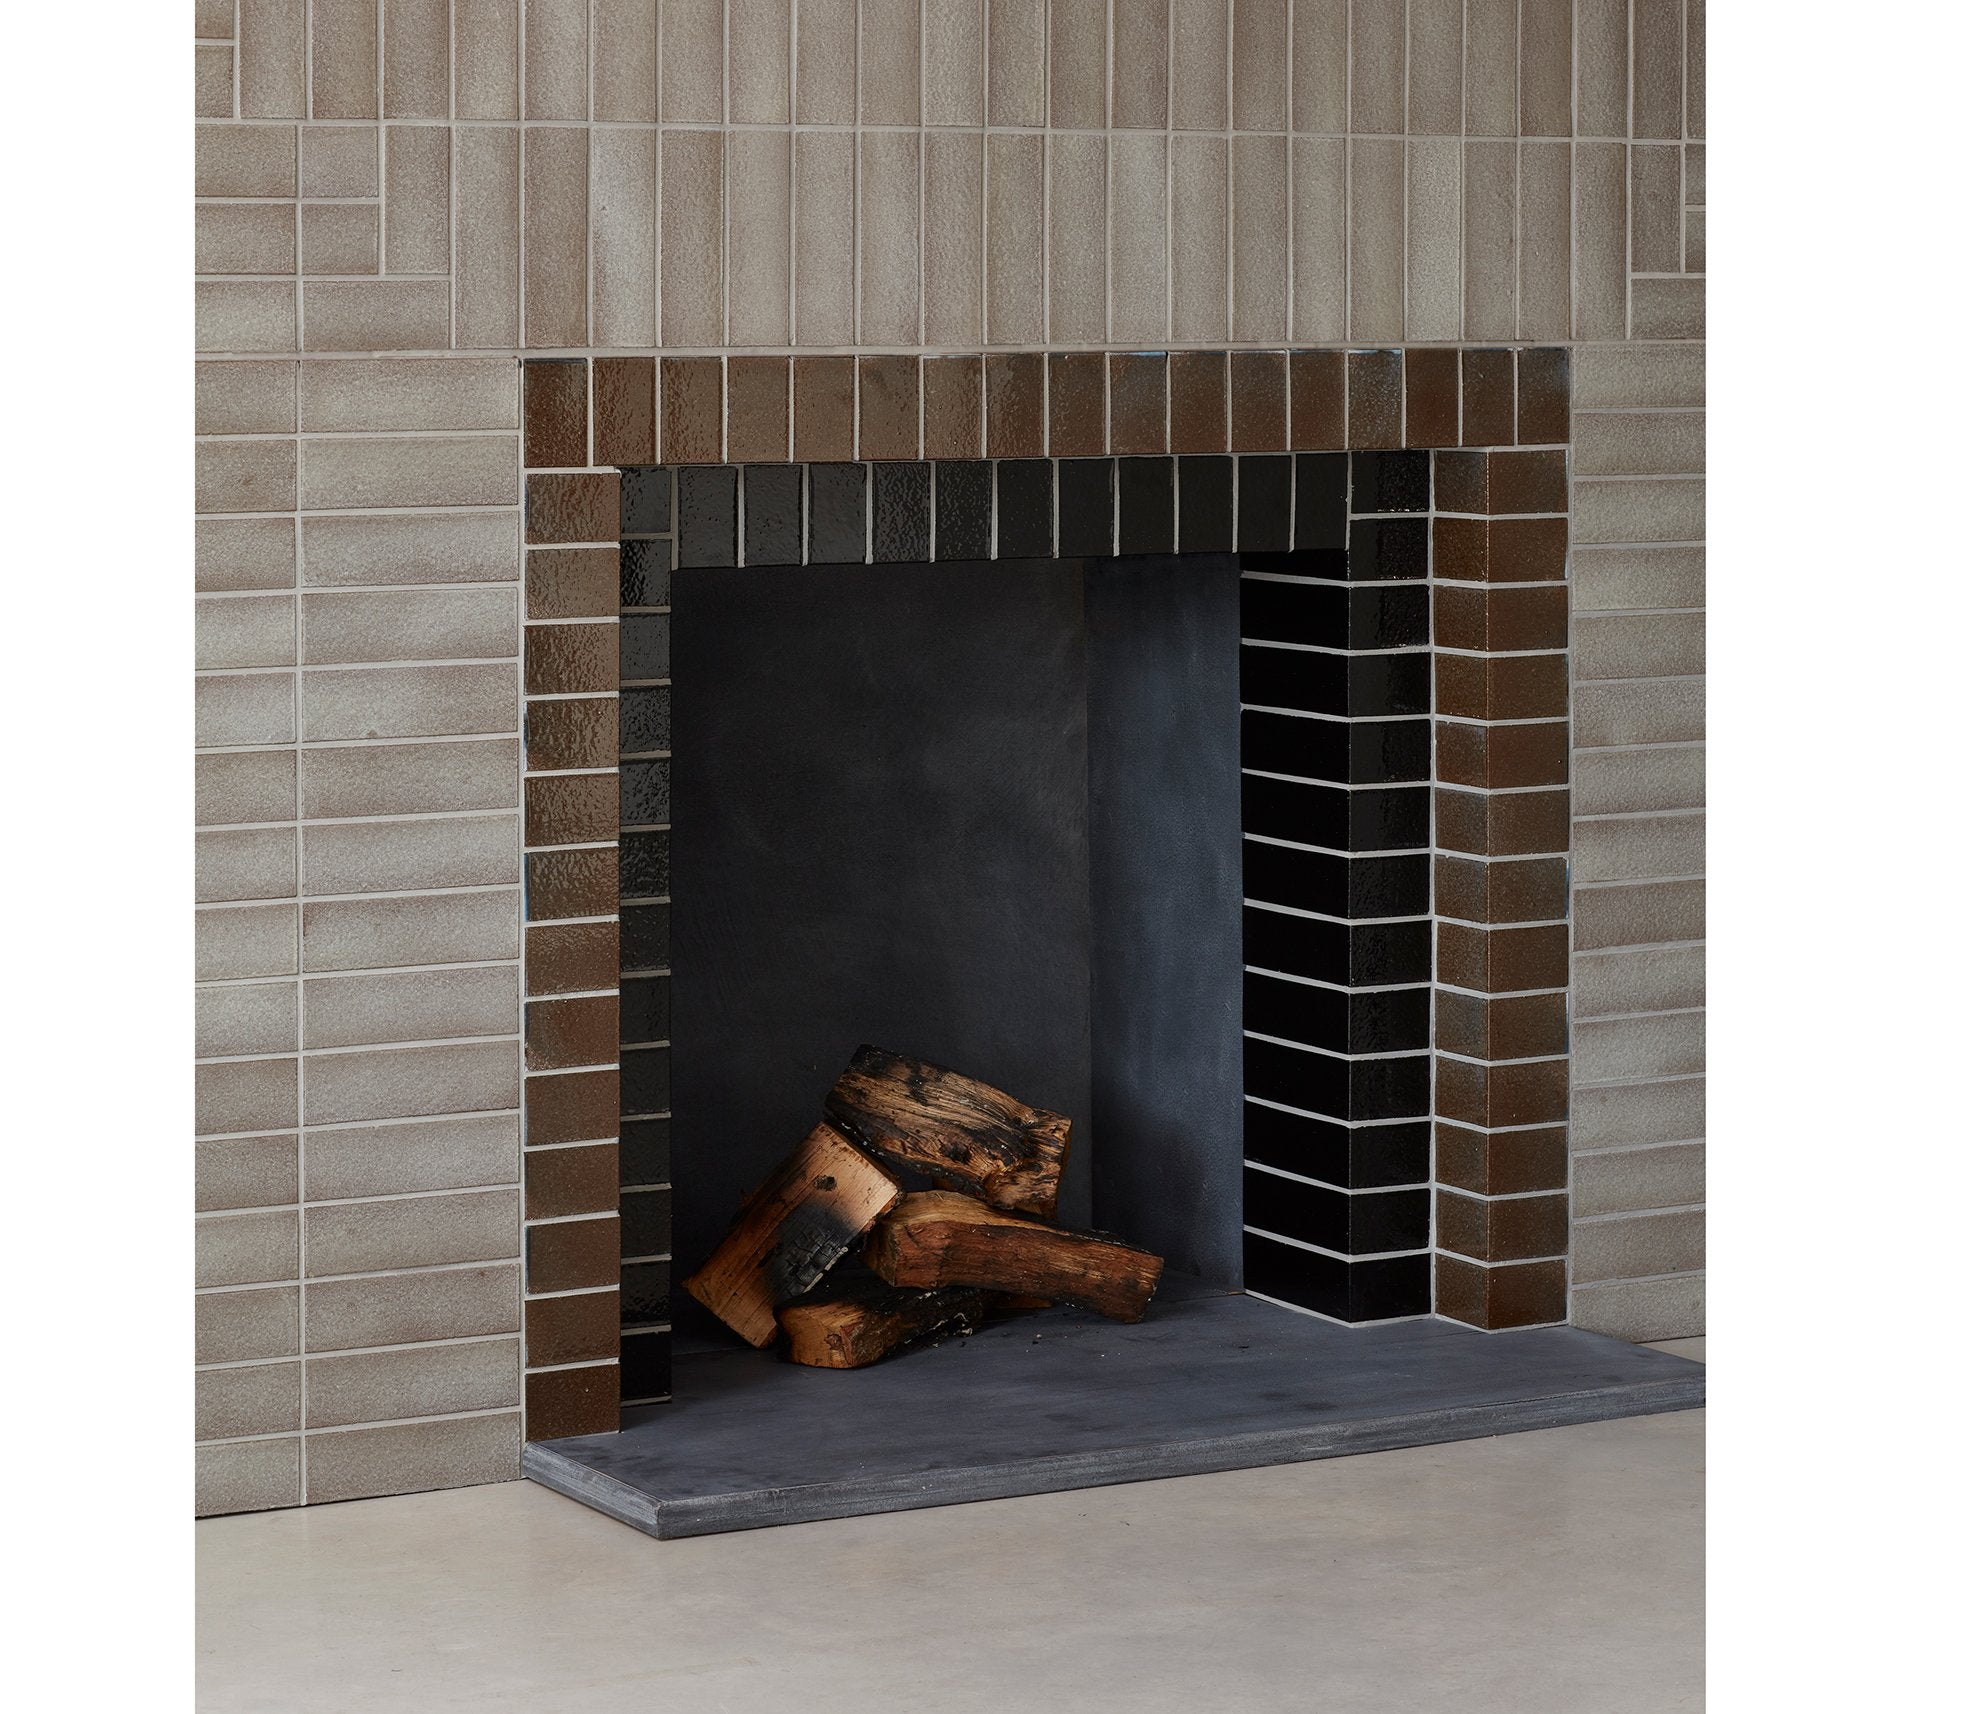 Terra Firma Glazed Bricks Product Image 5